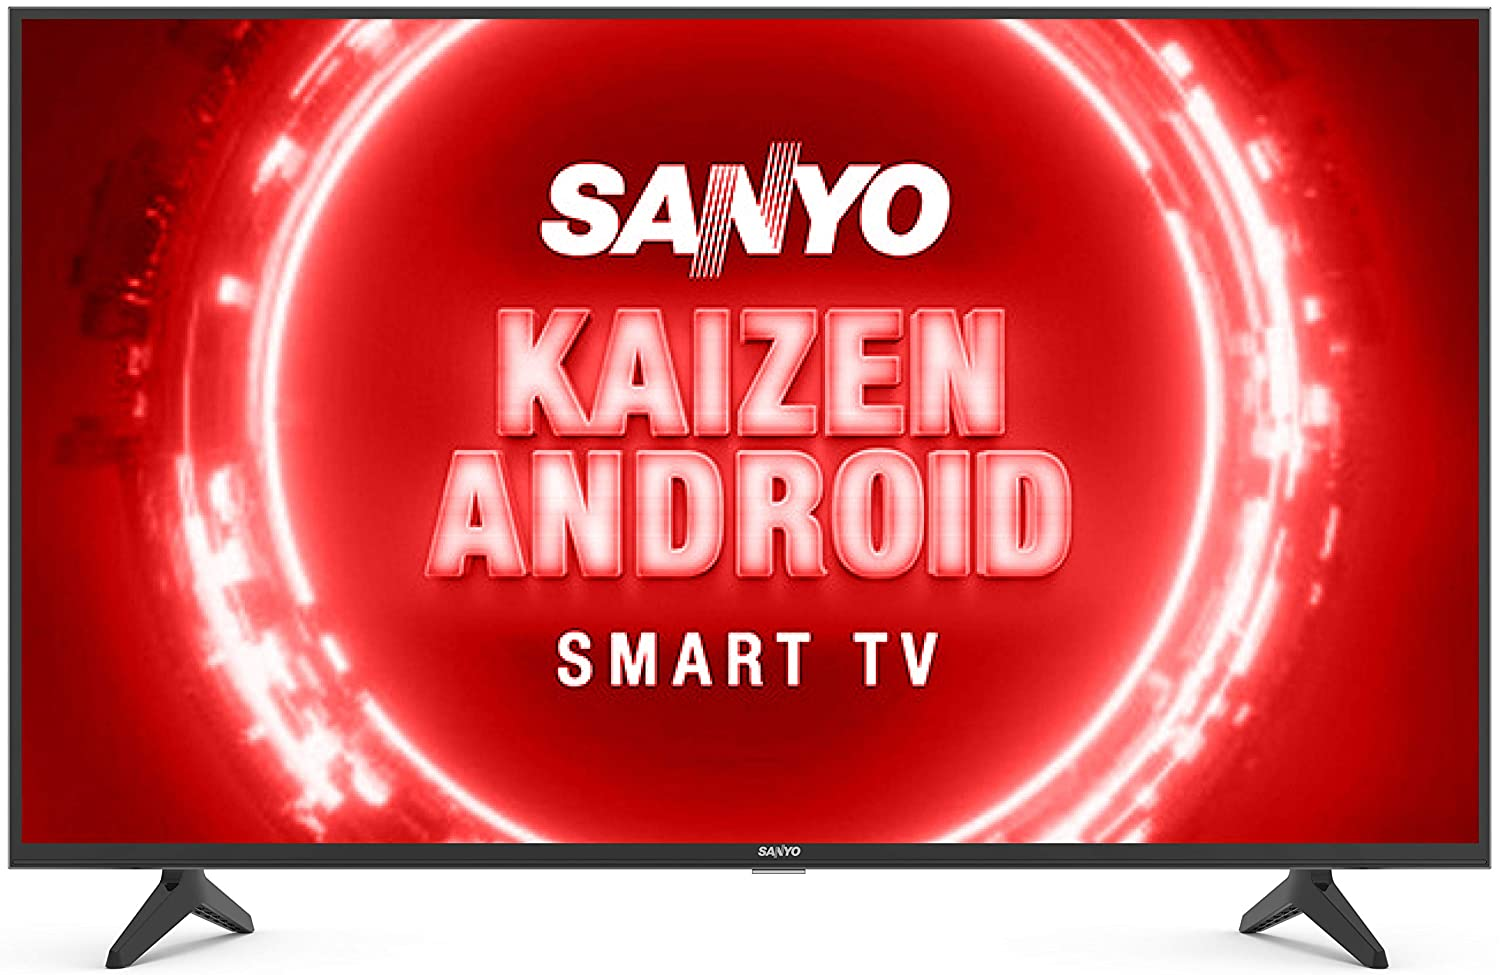 Sanyo 108 cm (43 inches) Kaizen Series 4K Ultra HD Certified Android LED TV